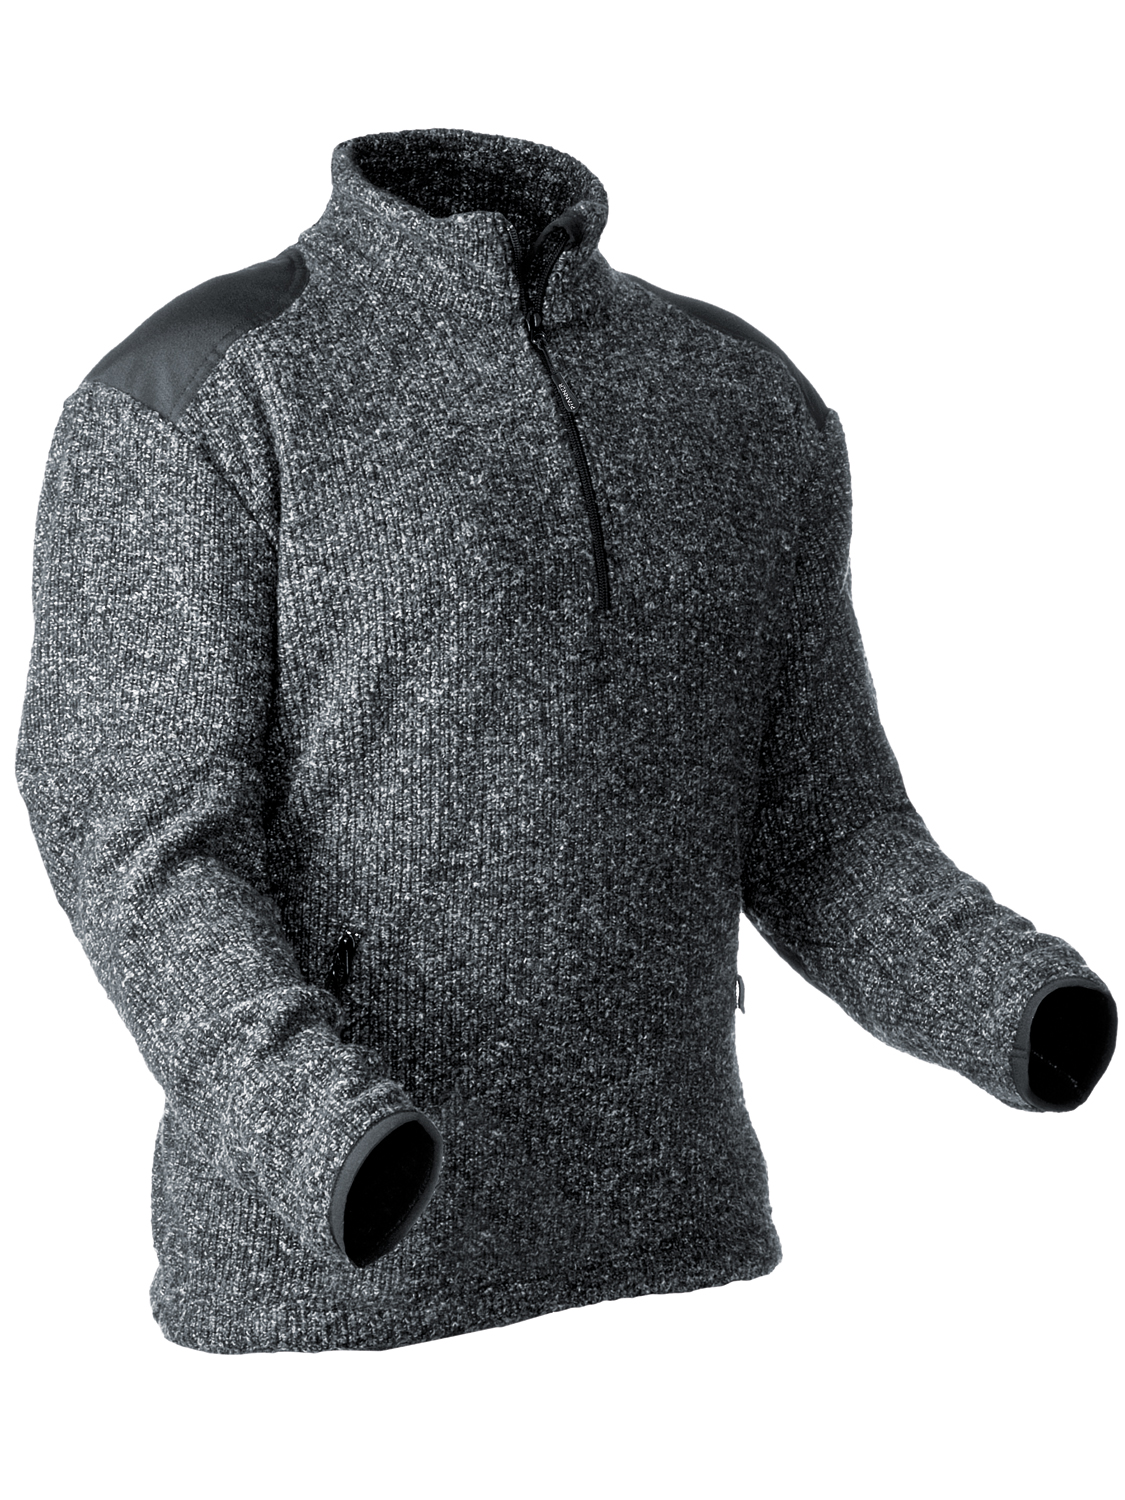 info for 189c1 a64c5 Pfanner Grizzly Pullover (grau)